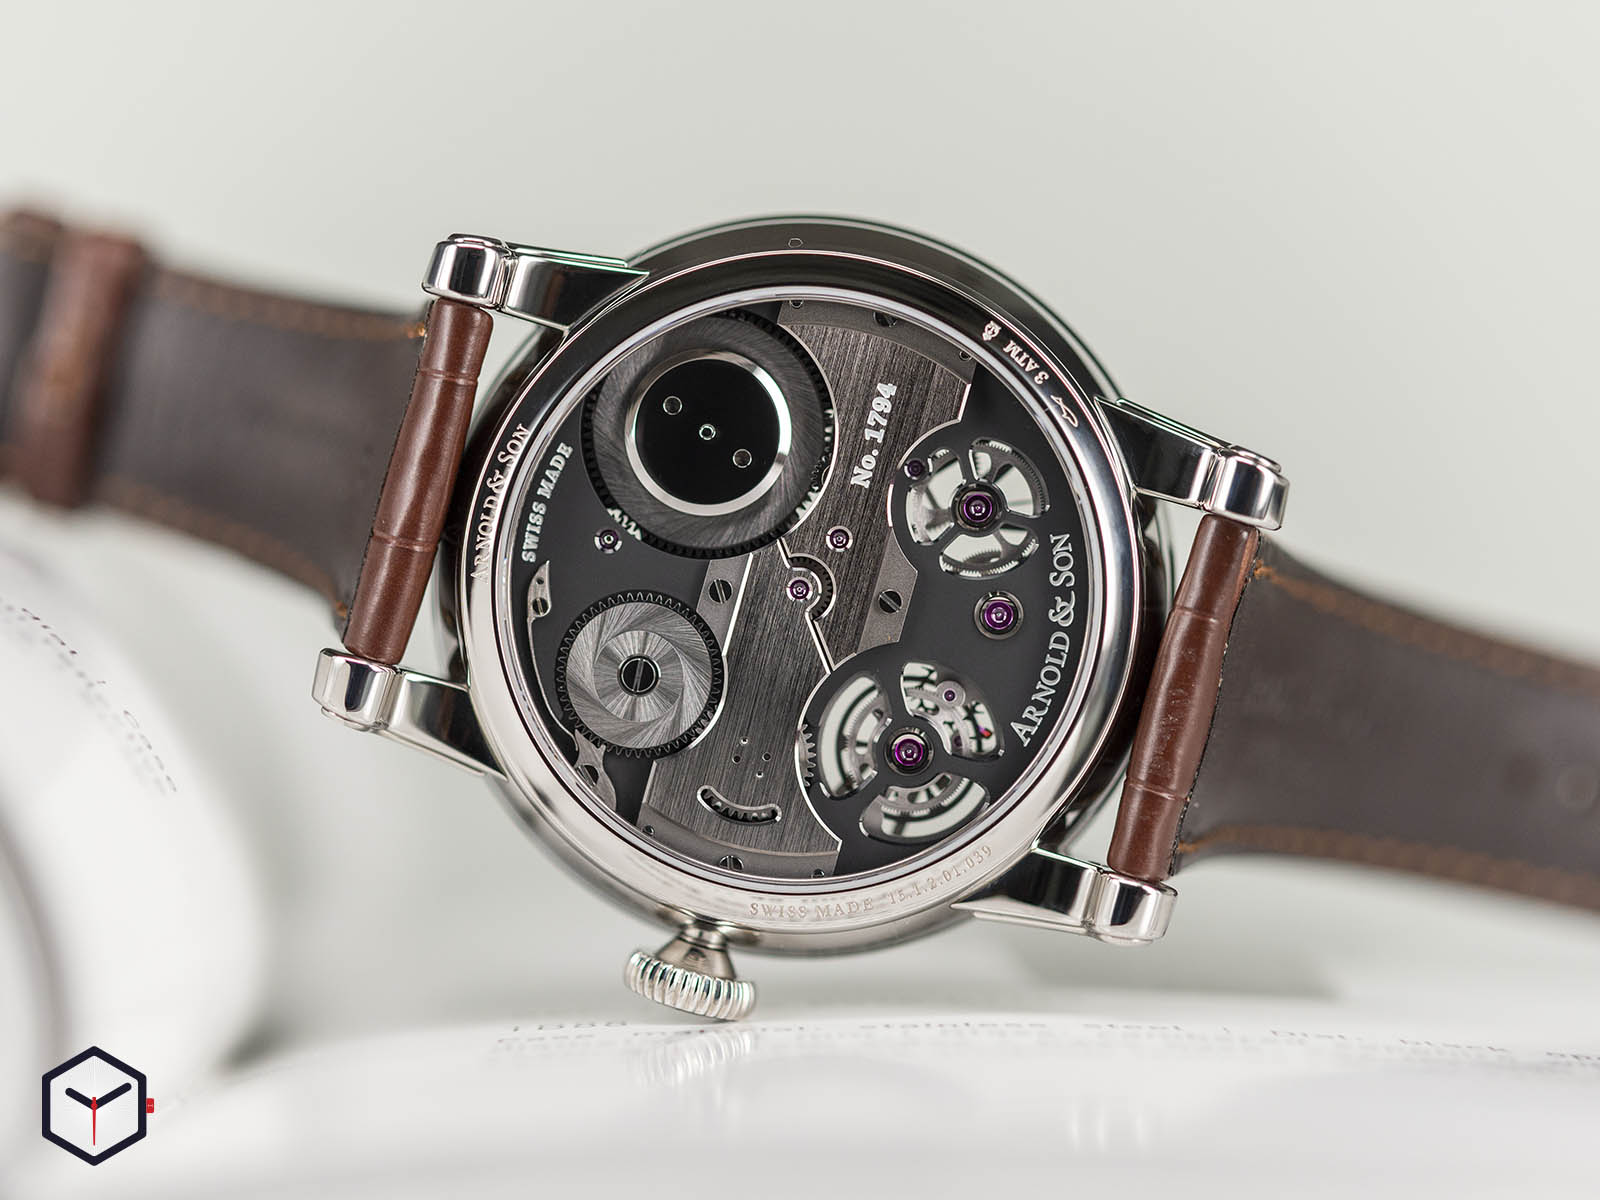 1etas-b01a-c113s-arnold-son-tourbillon-chronometer-no-36-tribute-edition-steel-6.jpg